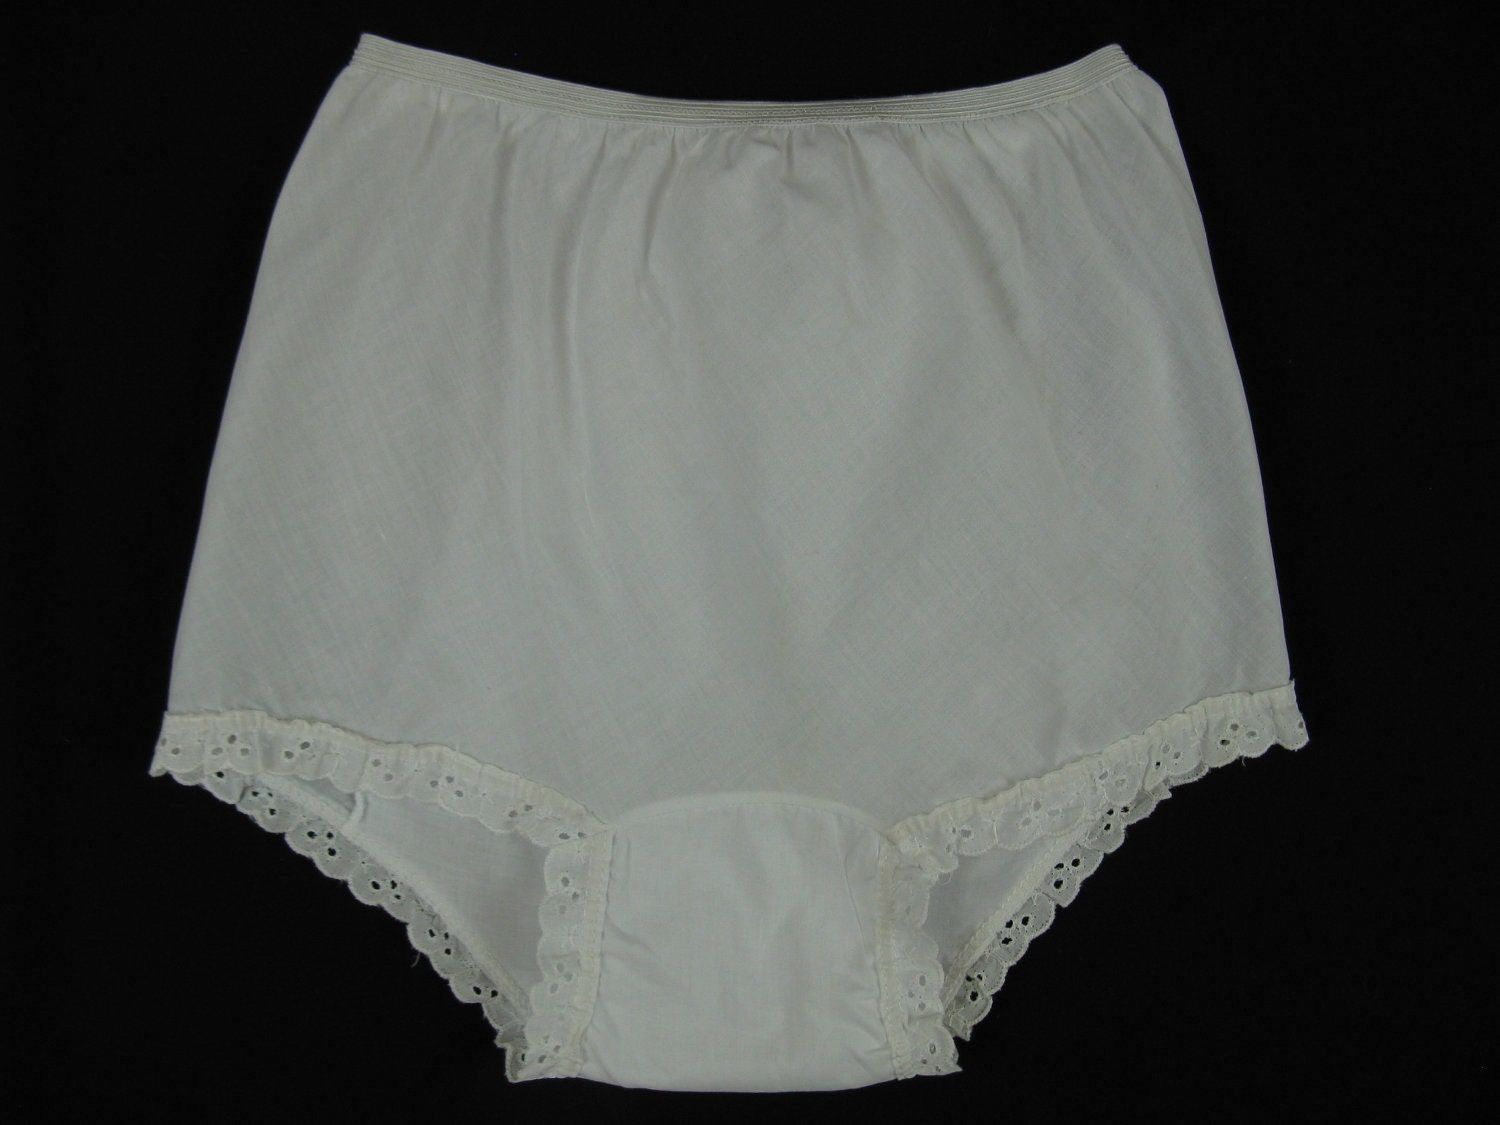 1950 S Ruffle Panties Little Girl White Cotton Eyelet